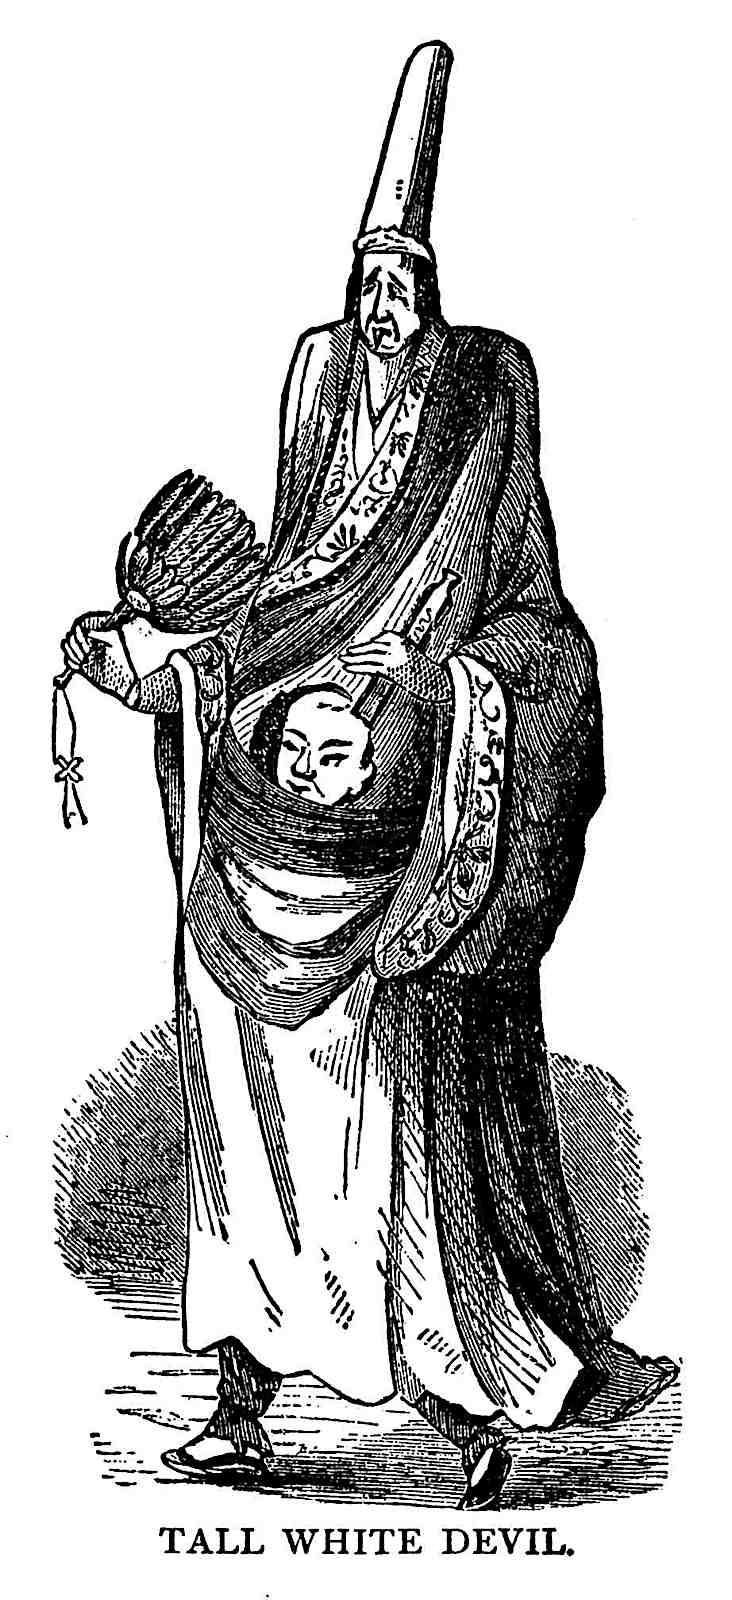 an 1800s China comedian, tall white devil